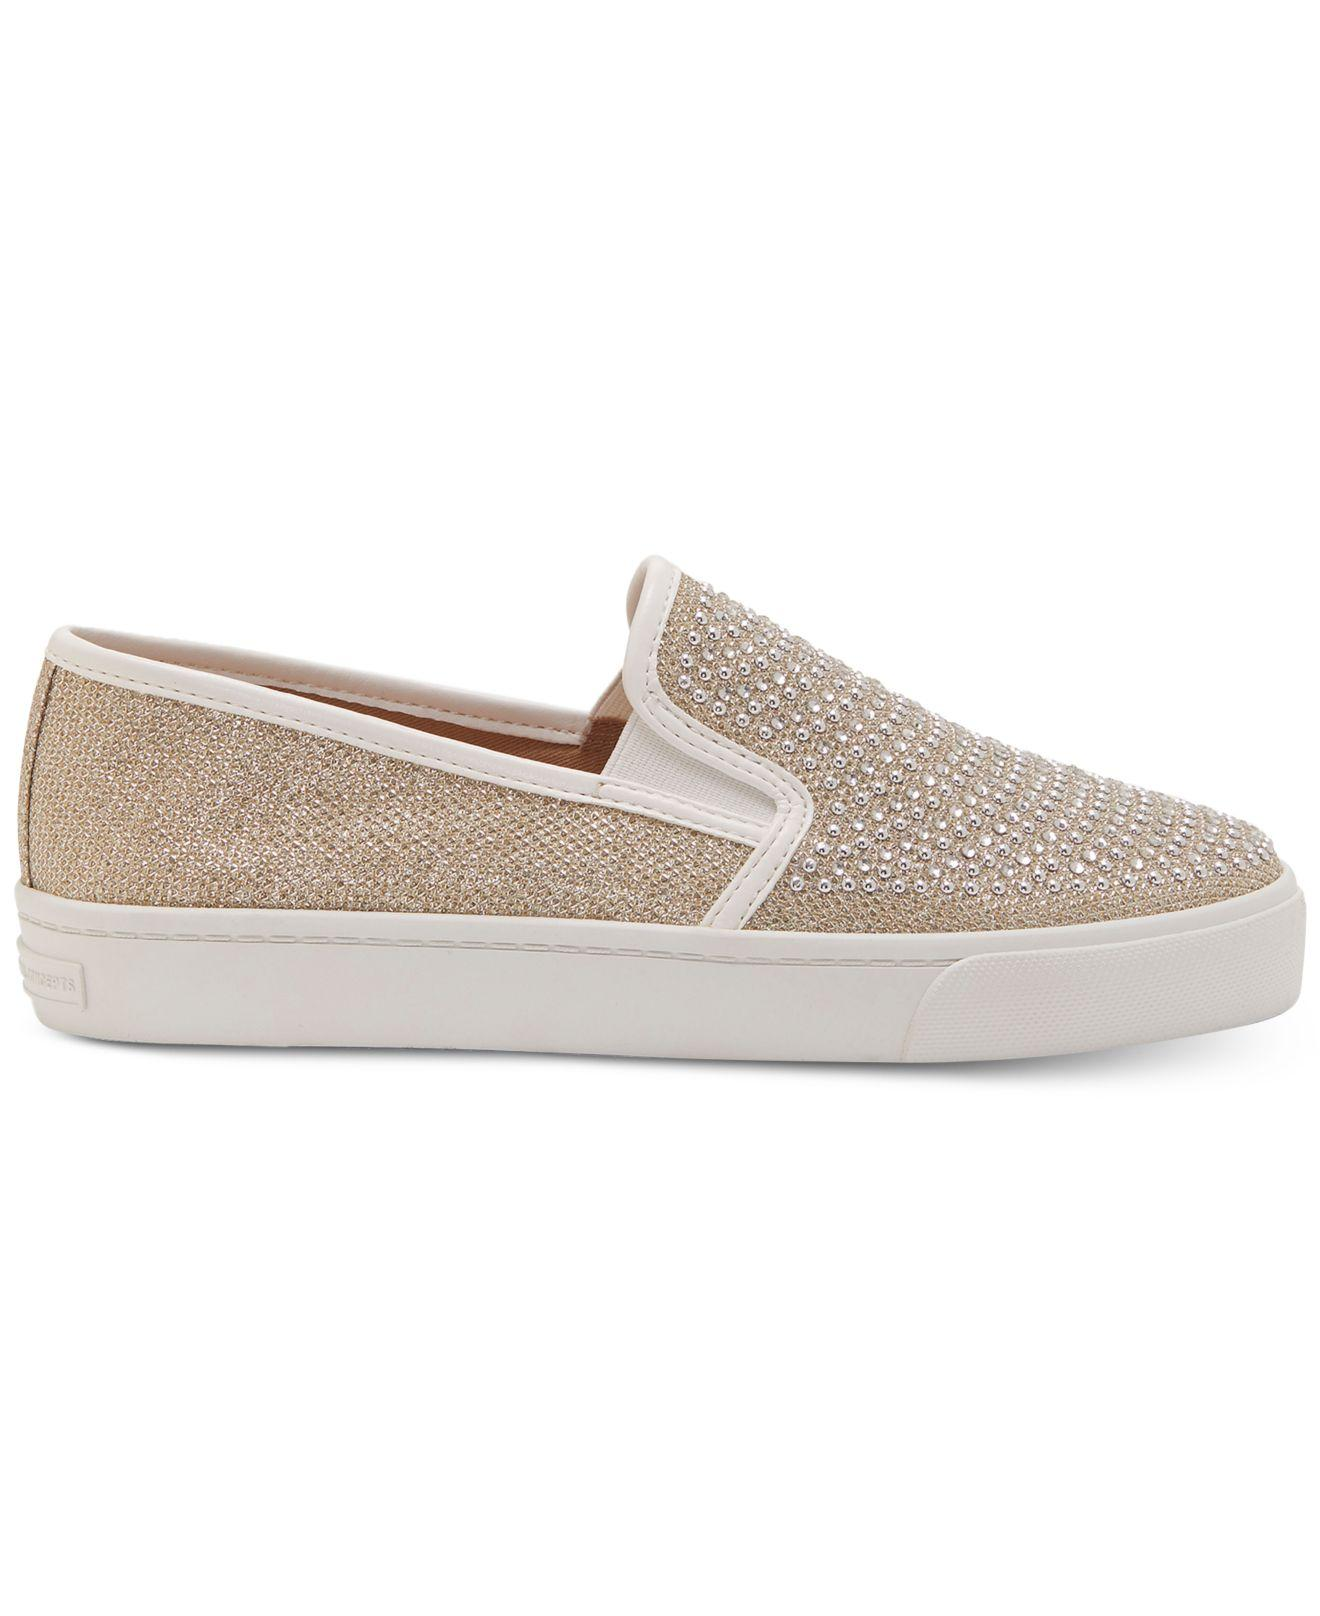 d5eb2253ccc Lyst - INC International Concepts Sammee Slip-on Sneakers in Metallic - Save  52%